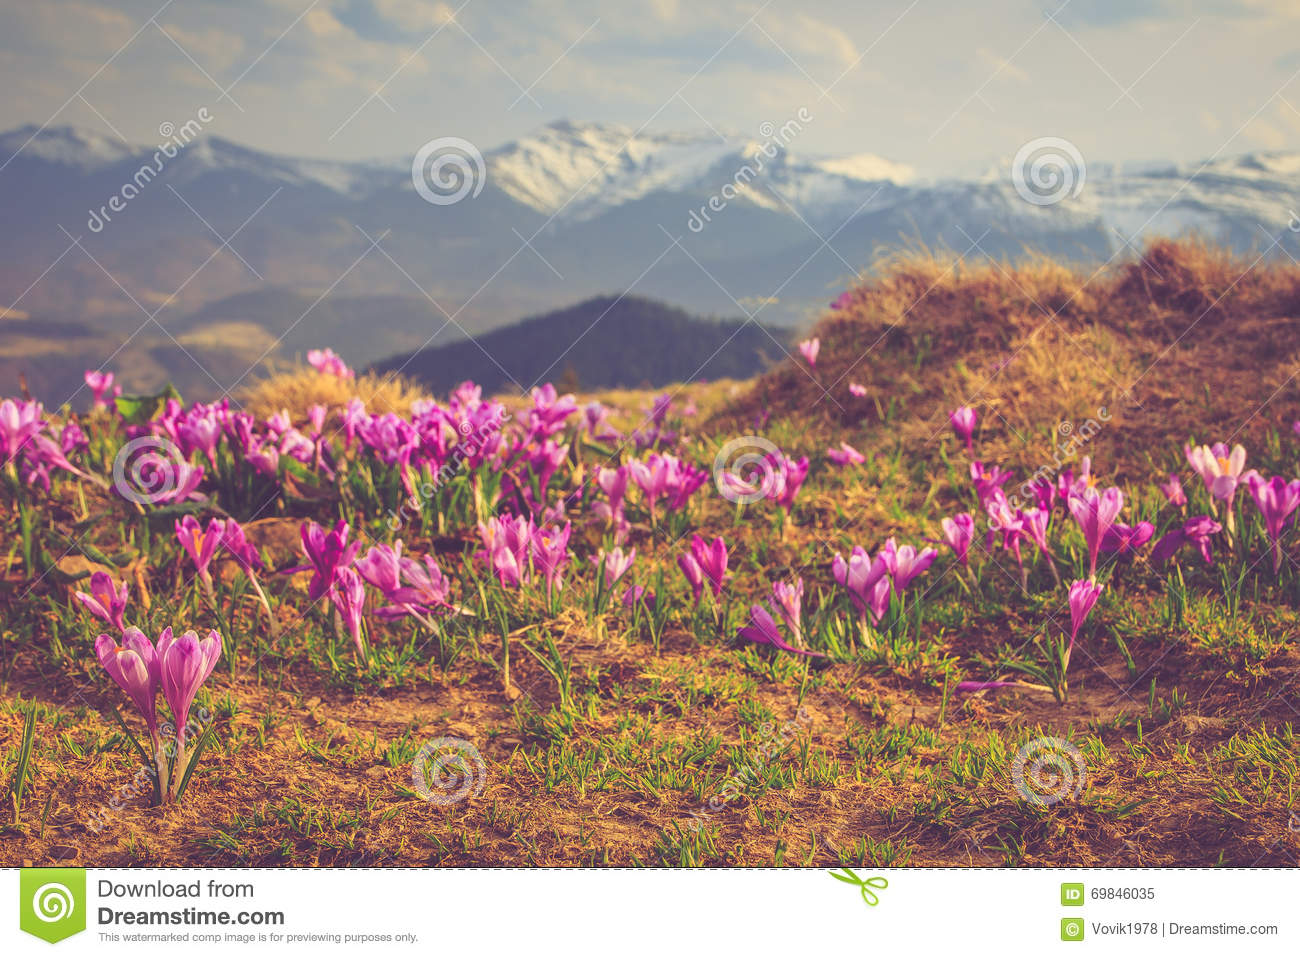 View of a meadow of blooming crocuses in the mountains.